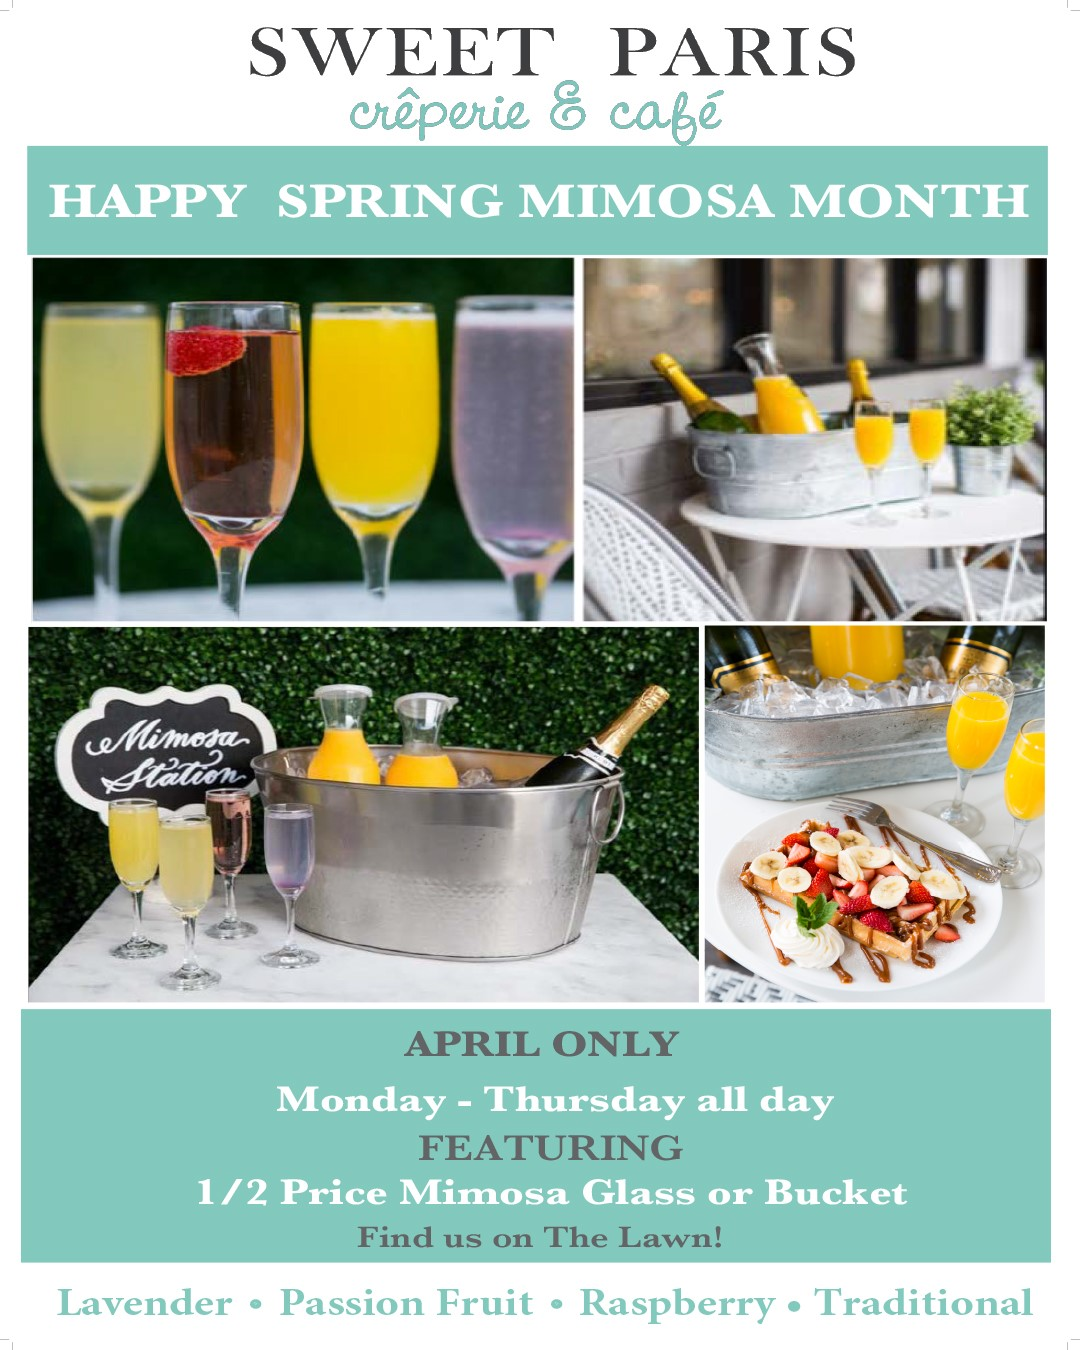 Happy Spring Mimosa Month from Sweet Paris Creperie & Cafe